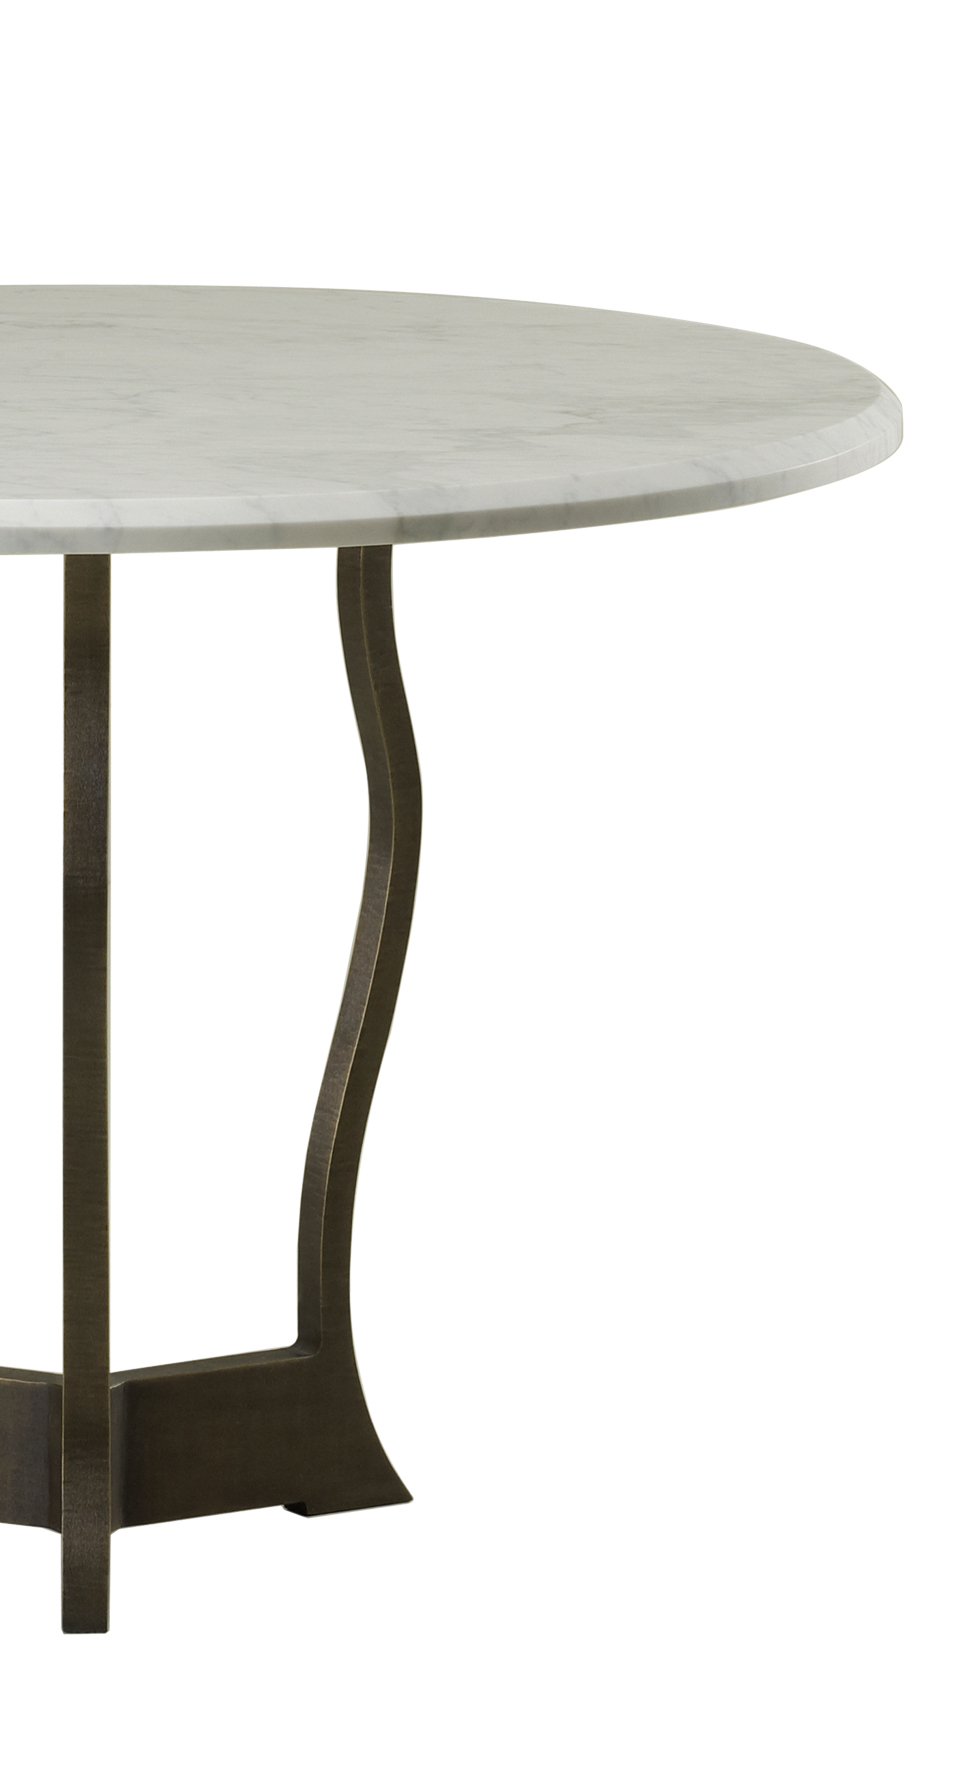 Detail of Erasmo, an outdoor dining table with bronze base and marble top, from Promemoria's outdoor catalogue | Promemoria